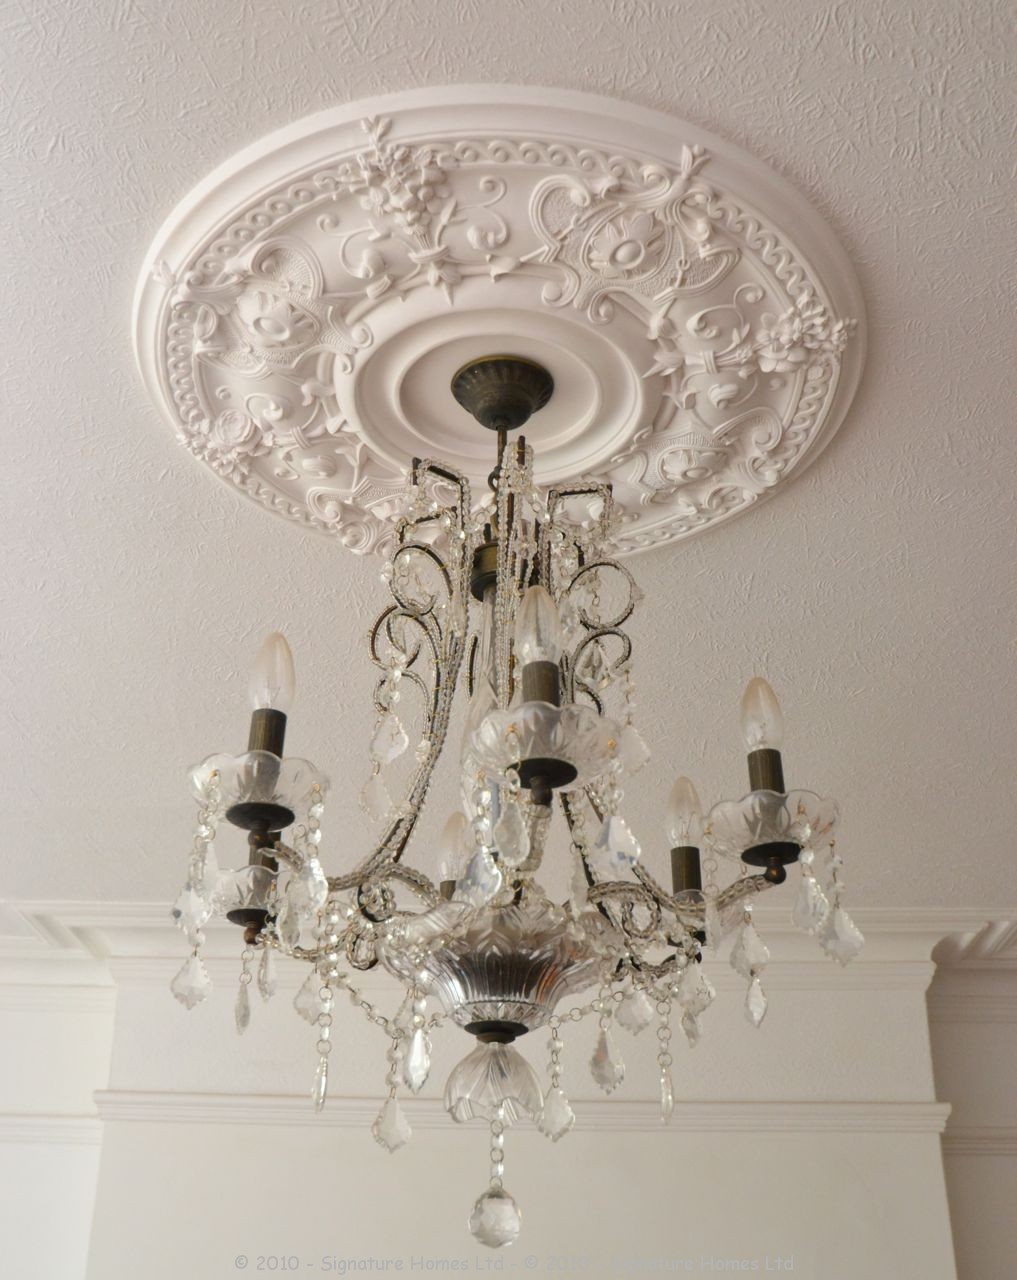 Fireplace Installation with Coving Ceiling Rose & Chandelier